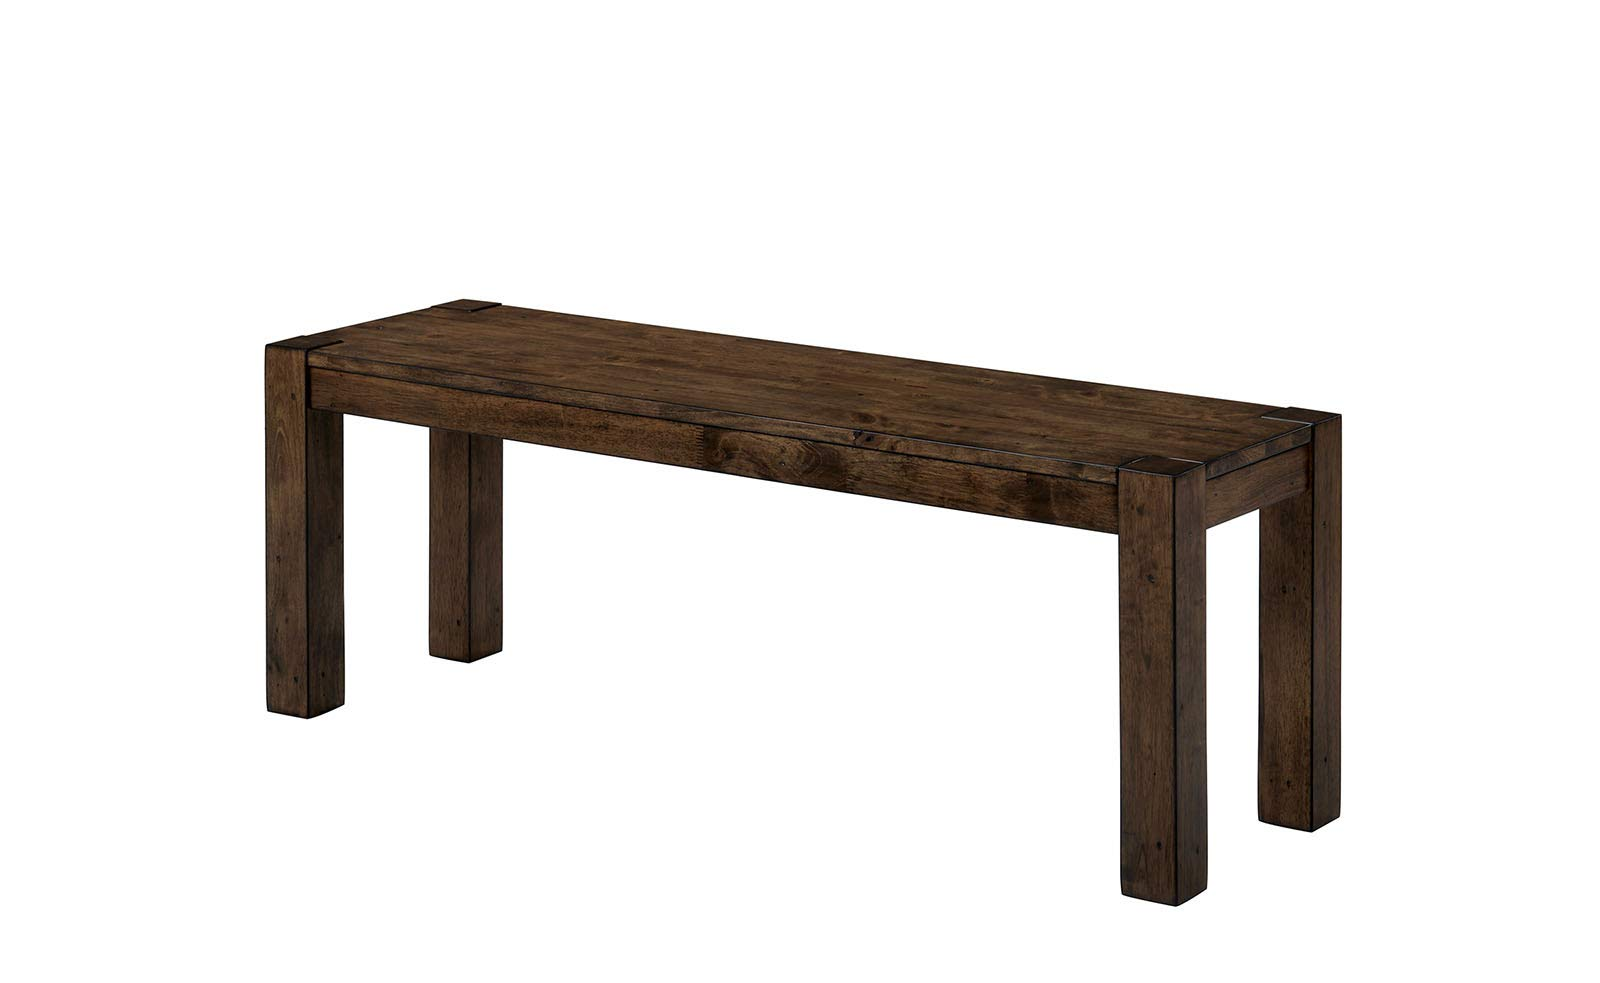 Benjara, Brown Benzara Wooden Bench With Trestle Style Base And Block Legs by Benjara